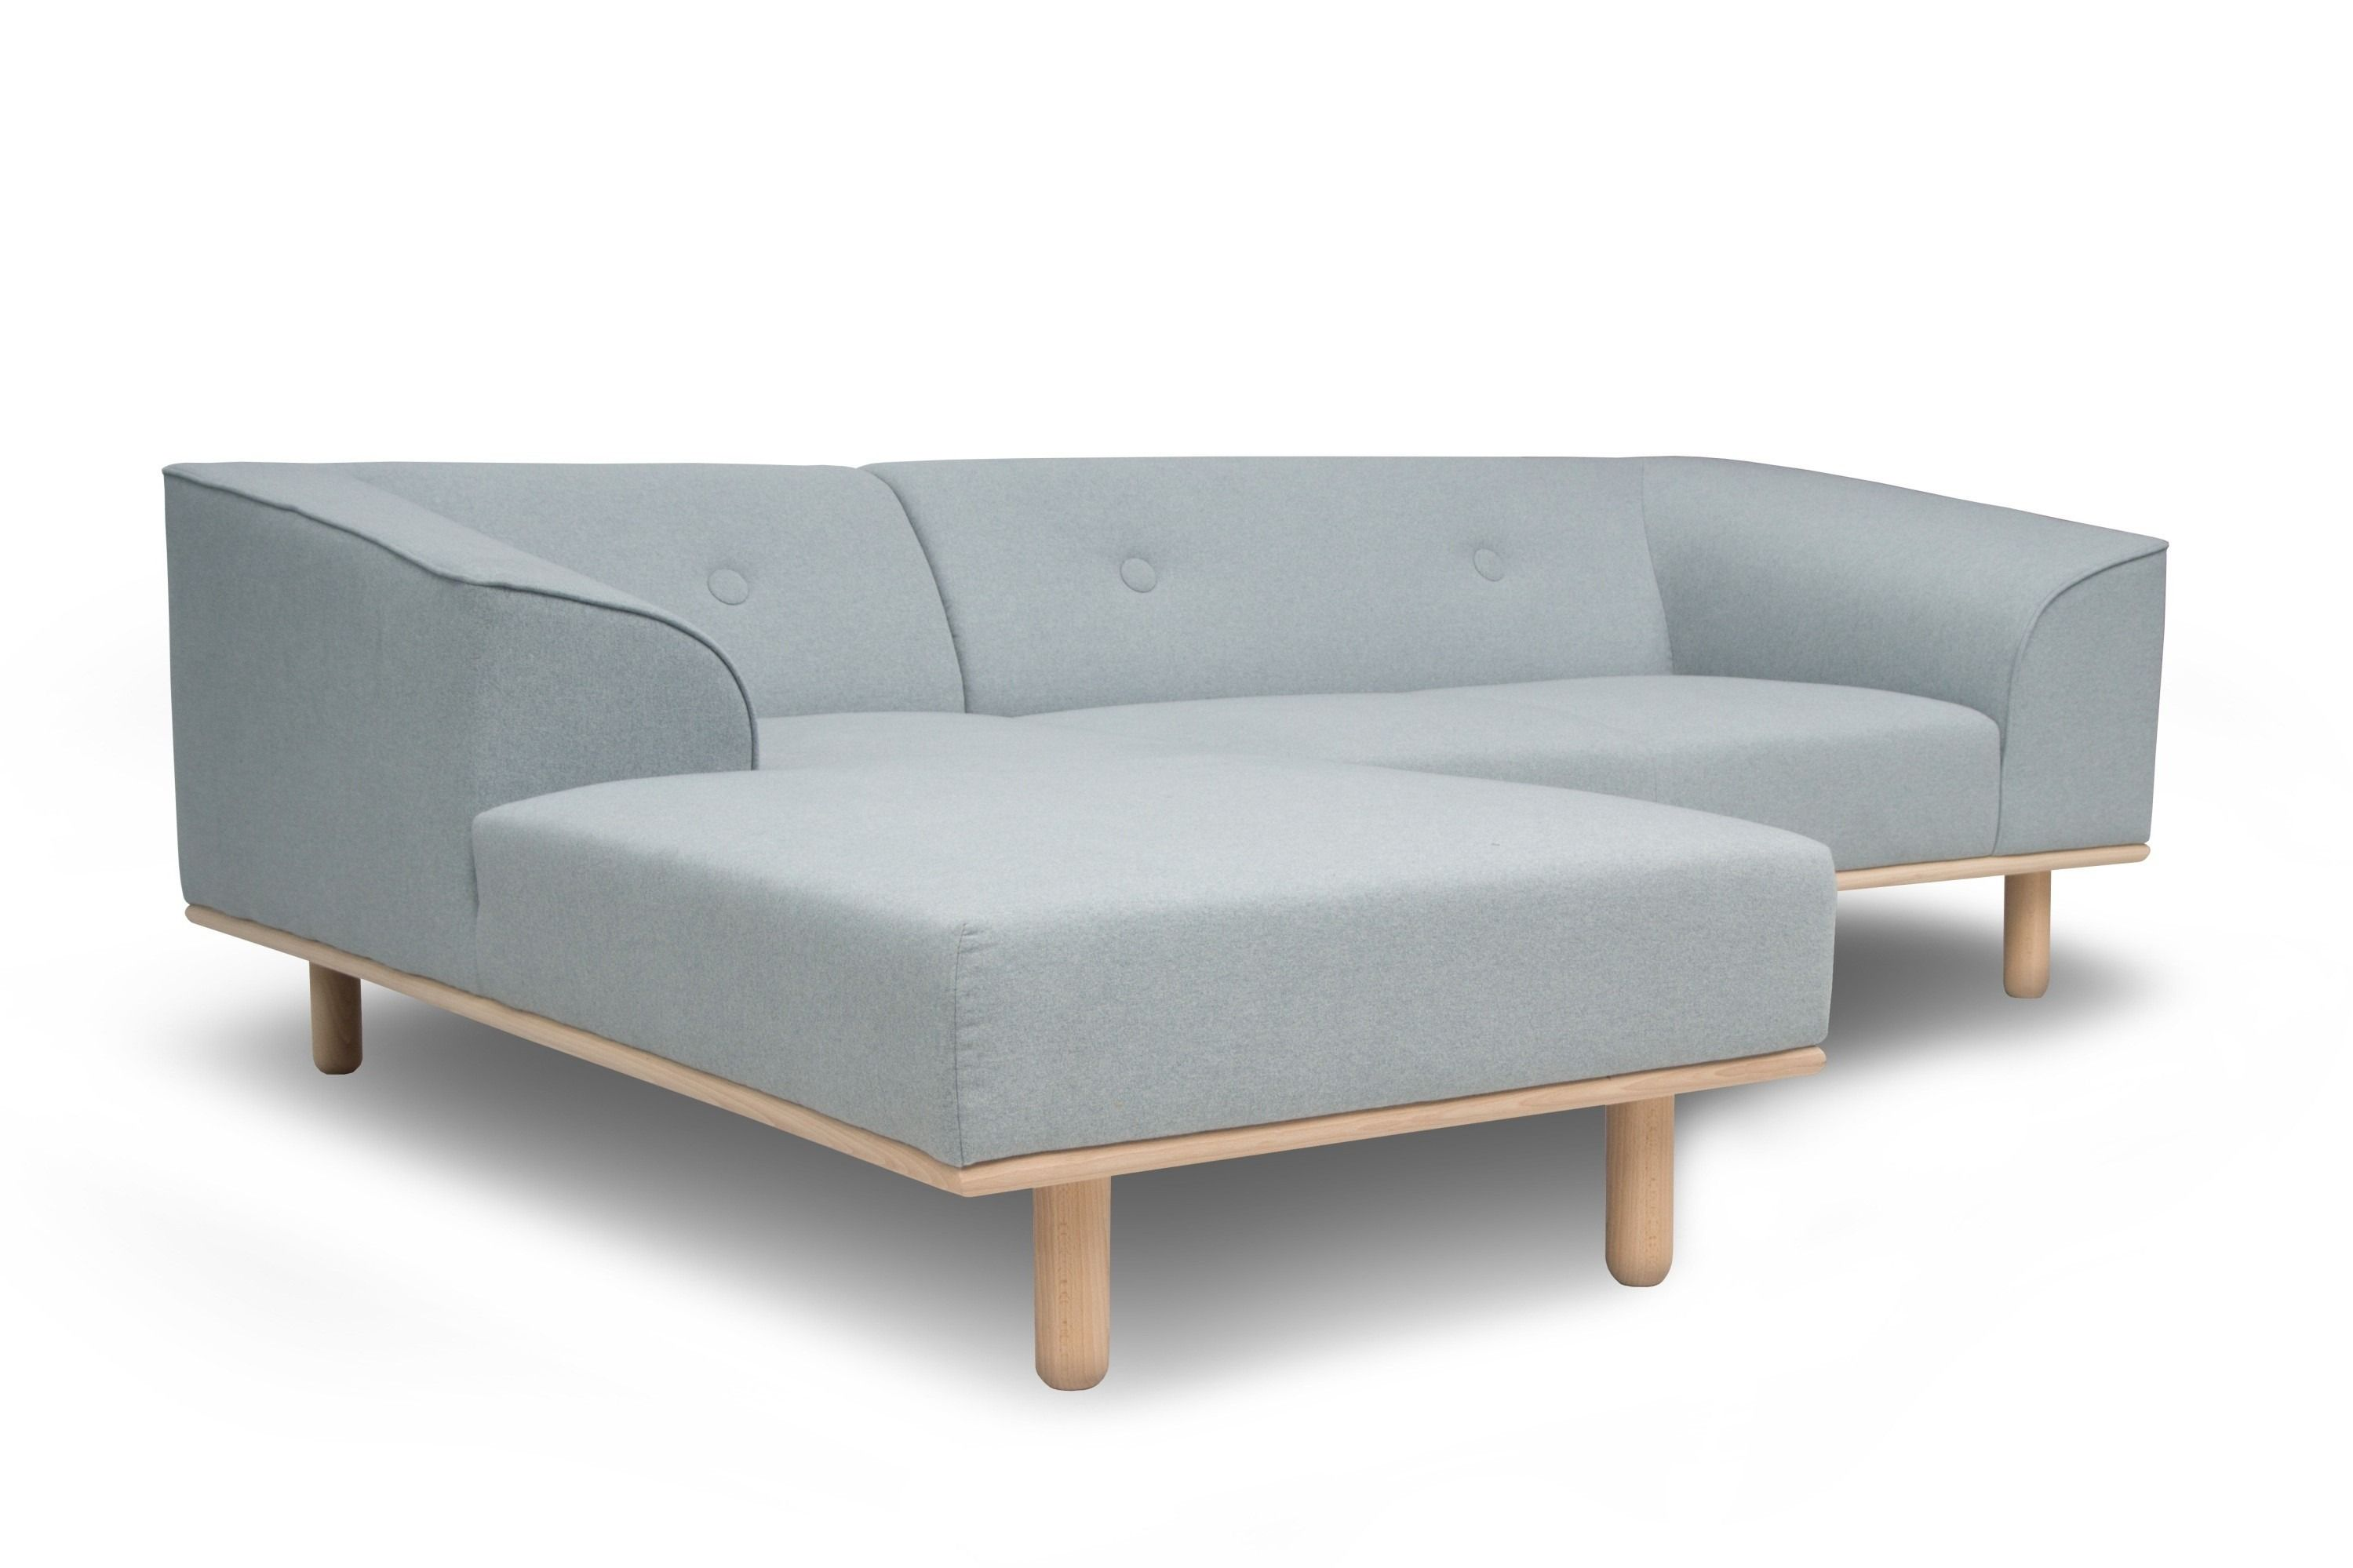 Billige Couch Rønne Chaiselong Sofa Lejlighed In 2019 Pinterest Sofa Sofa